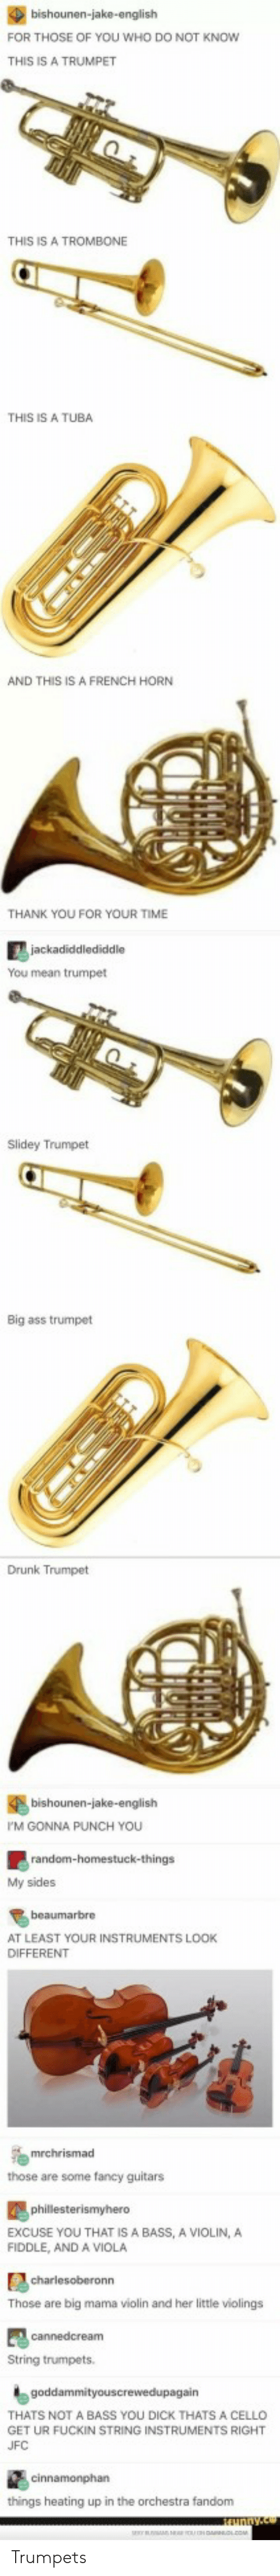 You Dick: FOR THOSE OF YOU WHO DO NOT KNOW  THIS IS A TRUMPET  THIS IS A TROMBONE  THIS IS A TUBA  AND THIS IS A FRENCH HORN  THANK YOU FOR YOUR TIME  You mean trumpet  Slidey Trumpet  Big ass trumpet  Drunk Trumpet  bishounen-jake-english  M GONNA PUNCH YOU  My sides  beaumarbre  AT LEAST YOUR INSTRUMENTS LOOK  DIFFERENT  those are some fancy guitars  EXCUSE YOU THAT IS A BASS, A VIOLIN, A  FIDDLE, AND A VIOLA  Those are big mama violin and her little violings  String trumpets.  THATS NOT A BASS YOU DICK THATS A CELLO  GET UR FUCKIN STRING INSTRUMENTS RIGHT  UFC  things heating up in the orchestra fandonm Trumpets